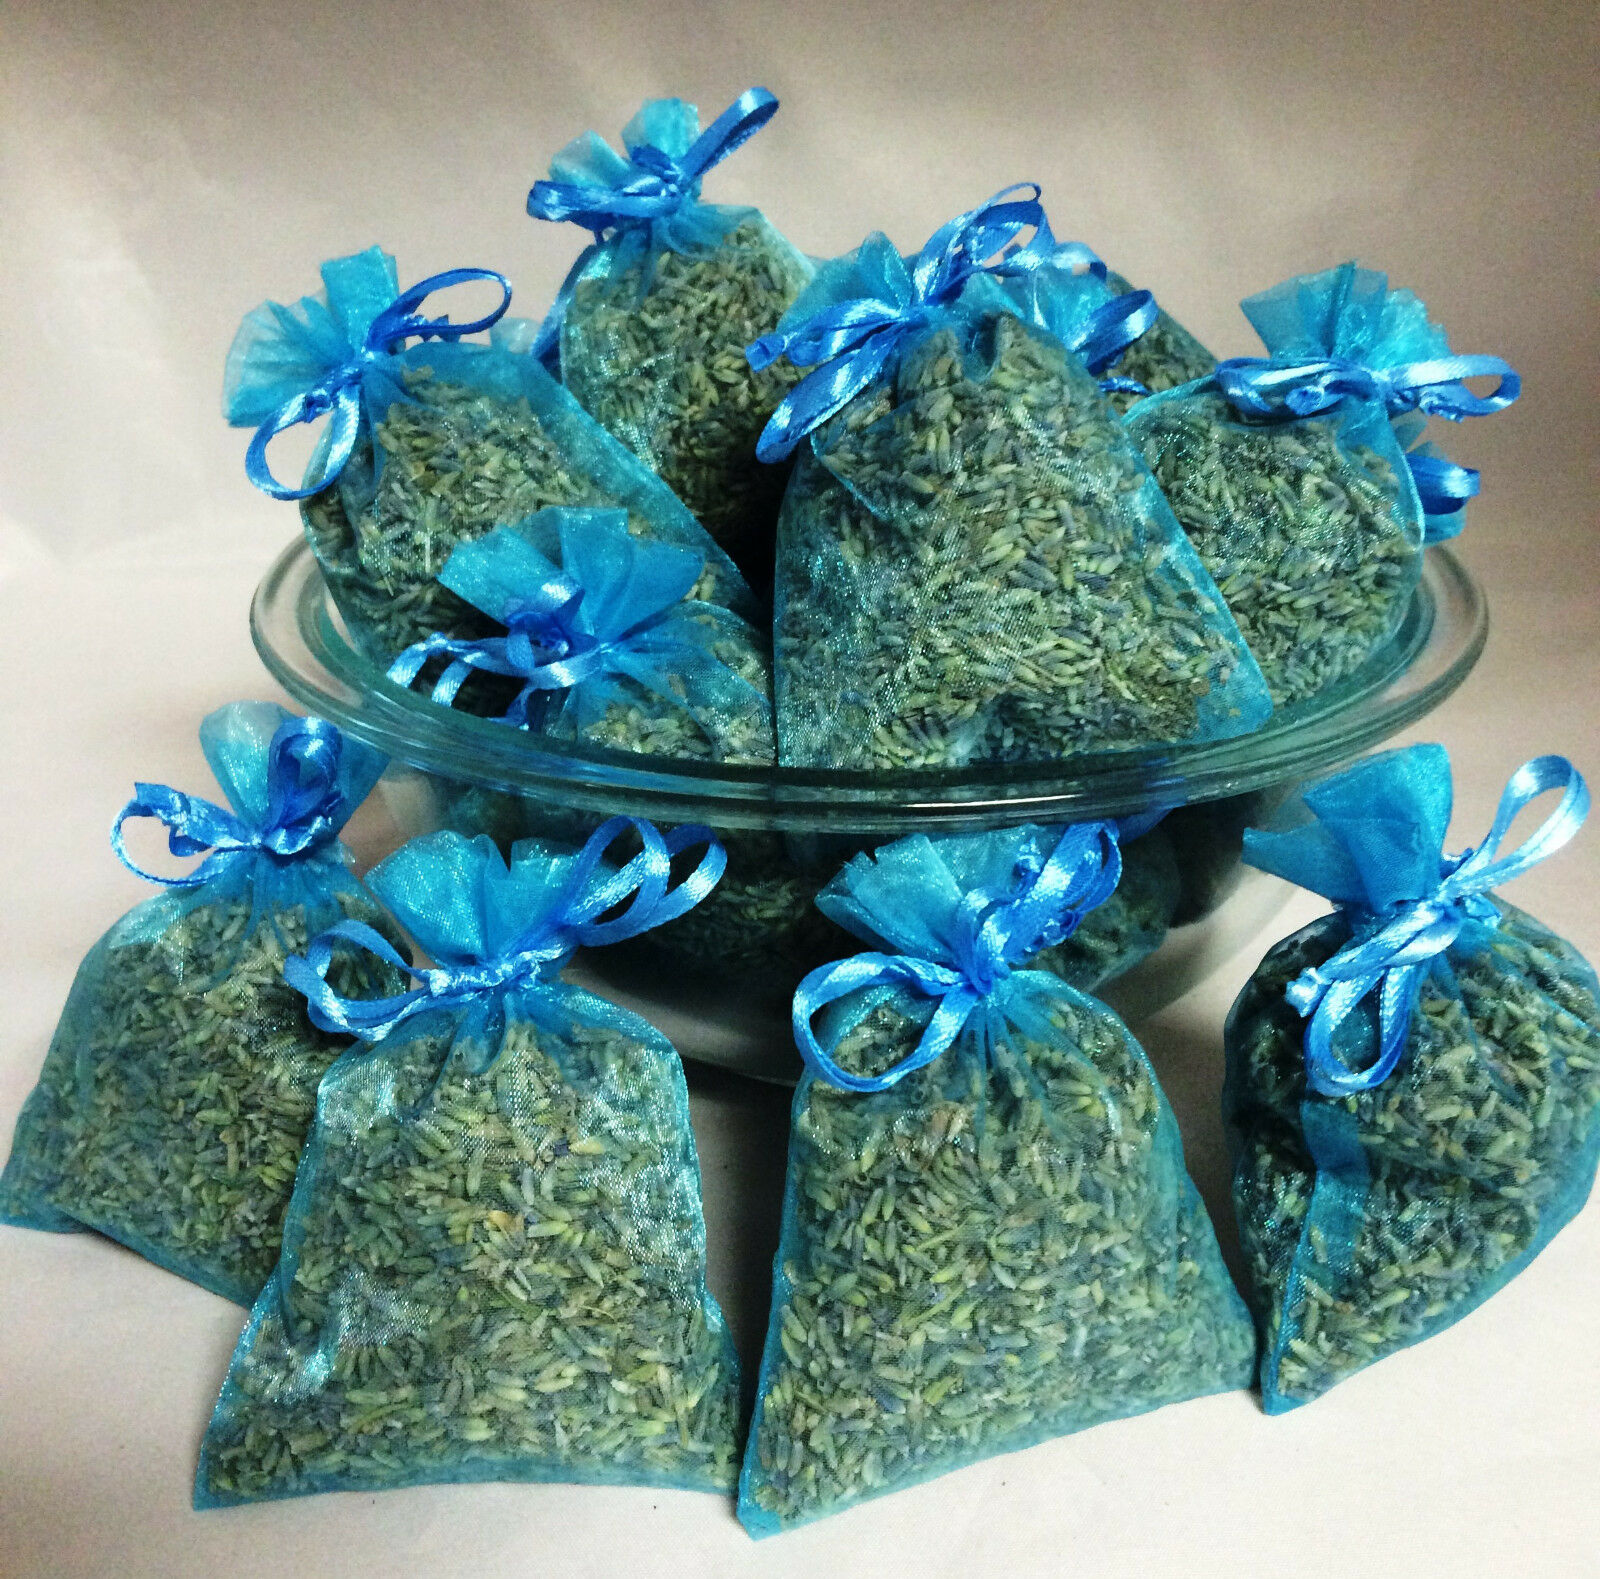 Set of 80 Lavender Sachets made with Turquoise Organza Bags